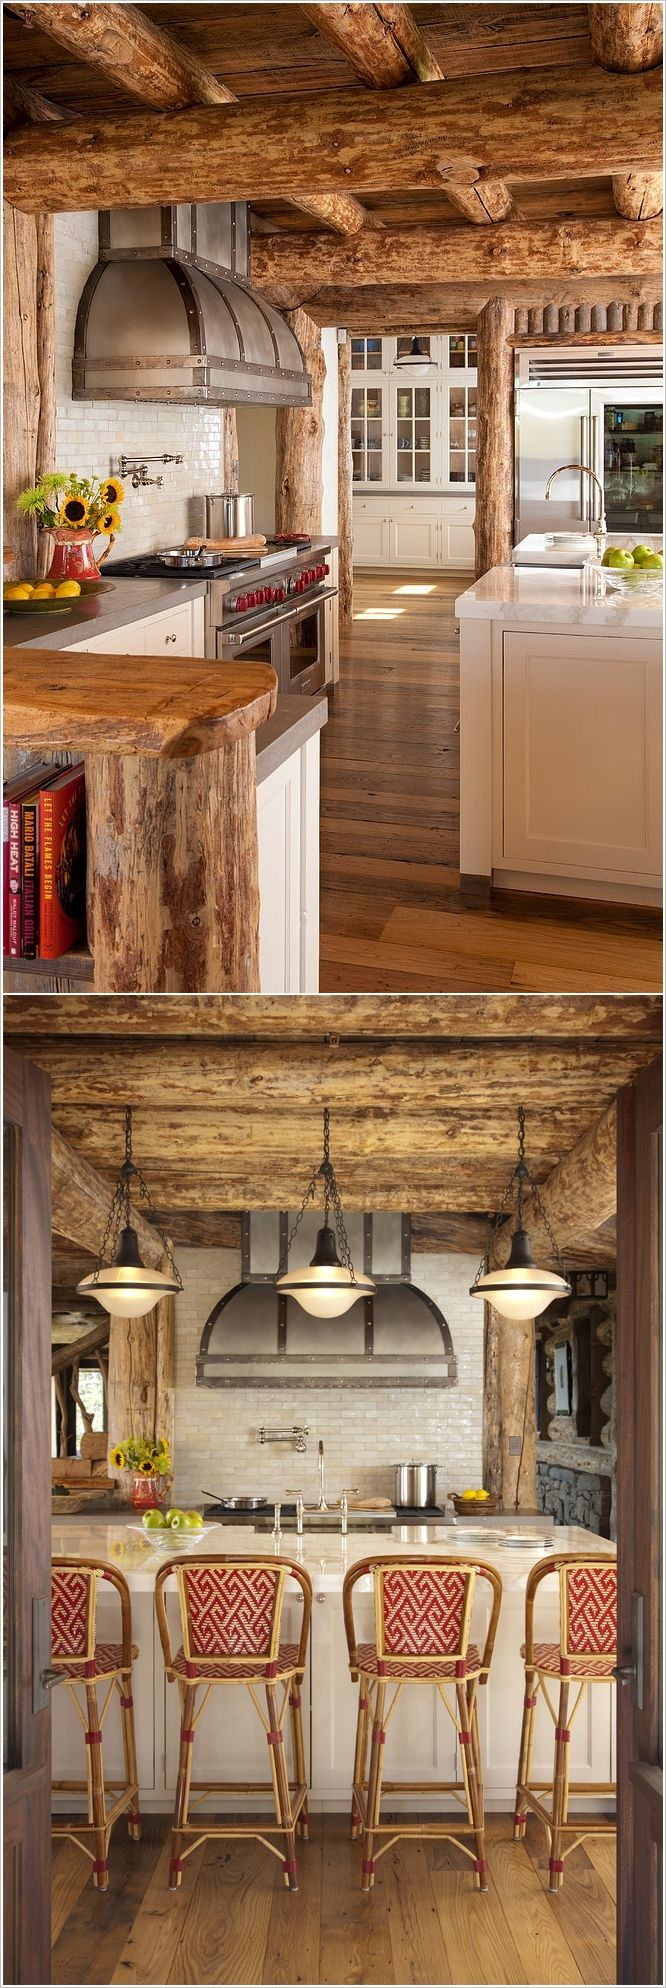 while it is true that contemporary interiors look stunning it cant be denied that rustic log cabin style interiors are also amazing so take a look at so: cabinets uk cabis